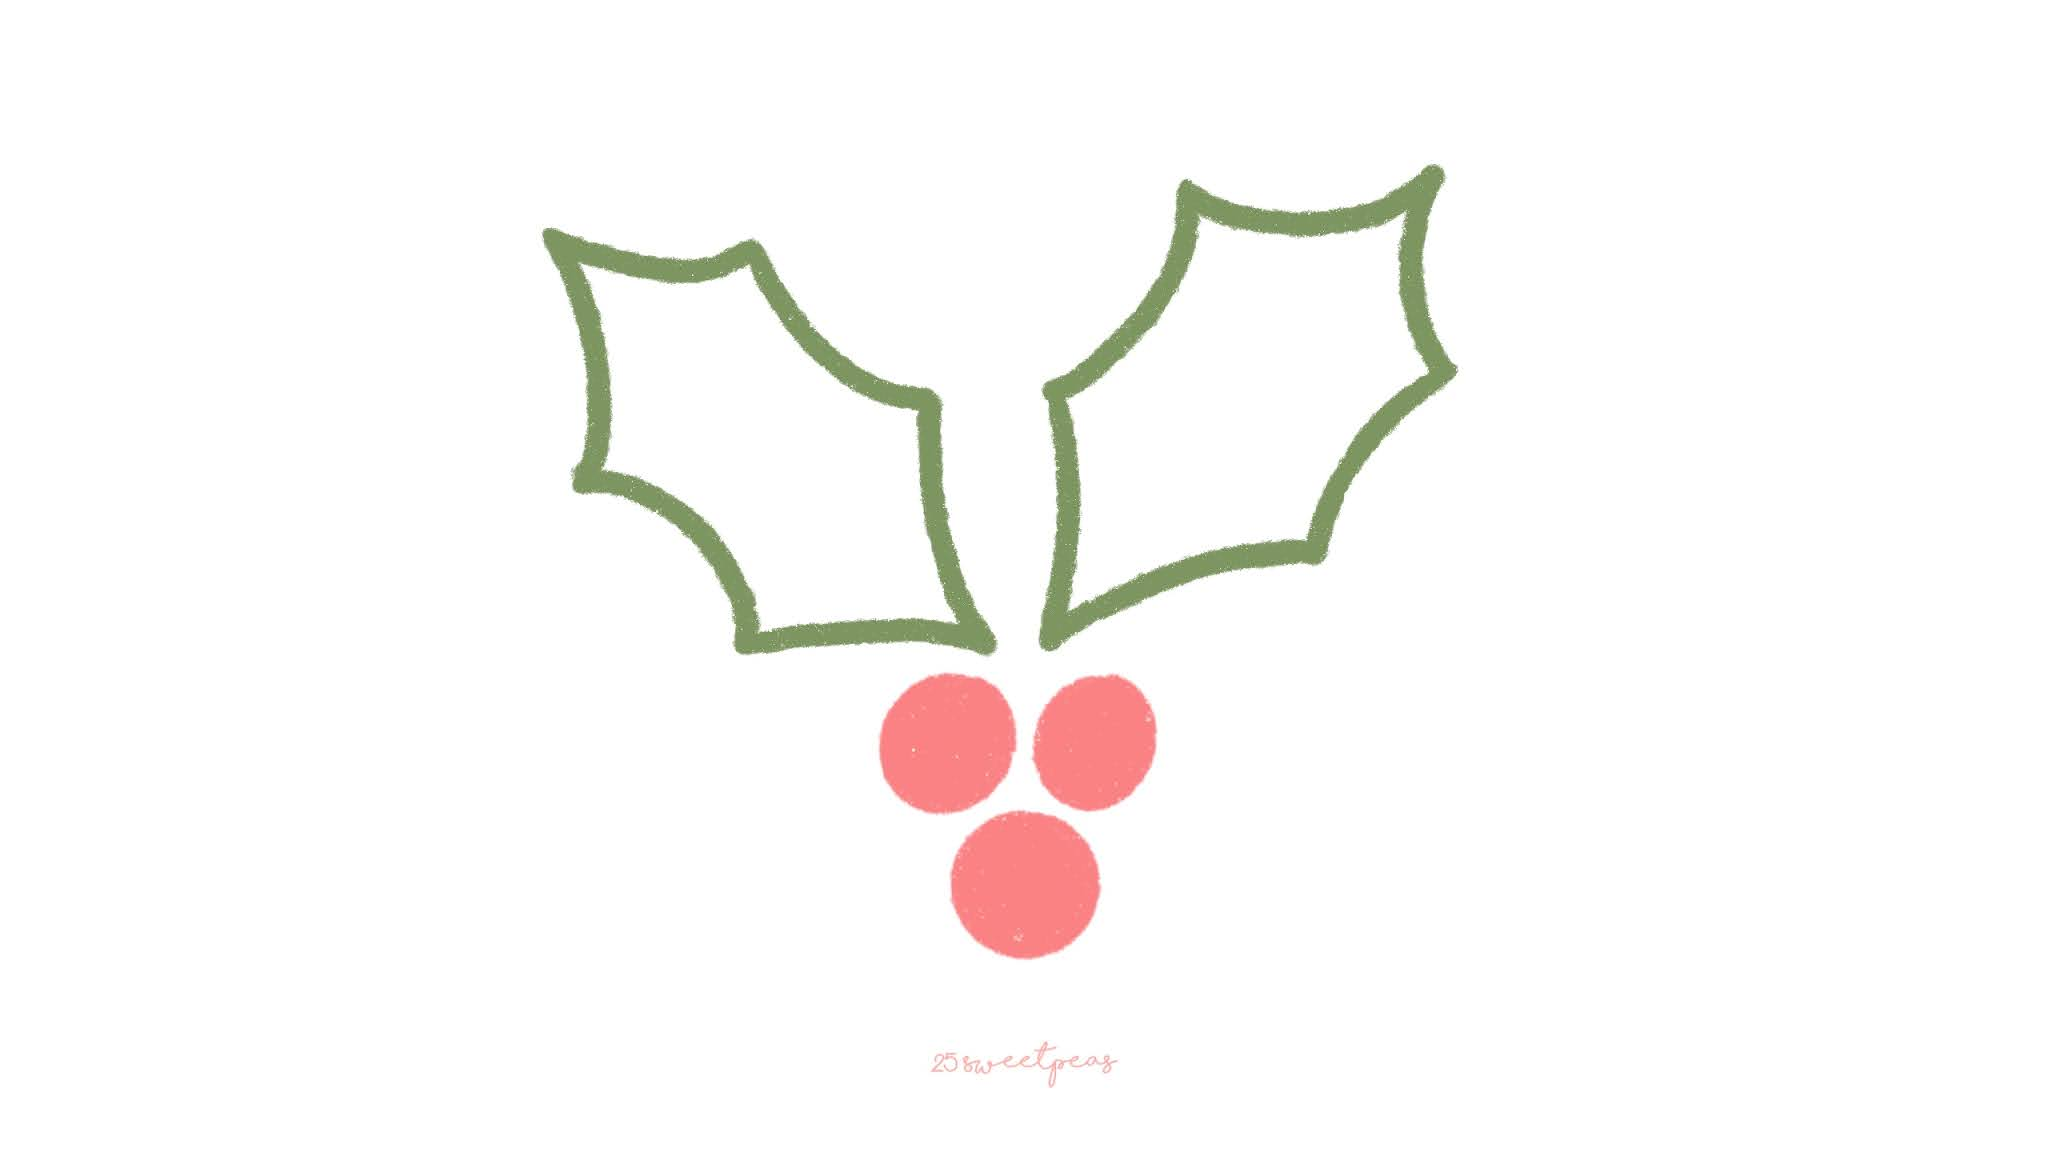 Step by Step : How to Draw or Paint Christmas Holly